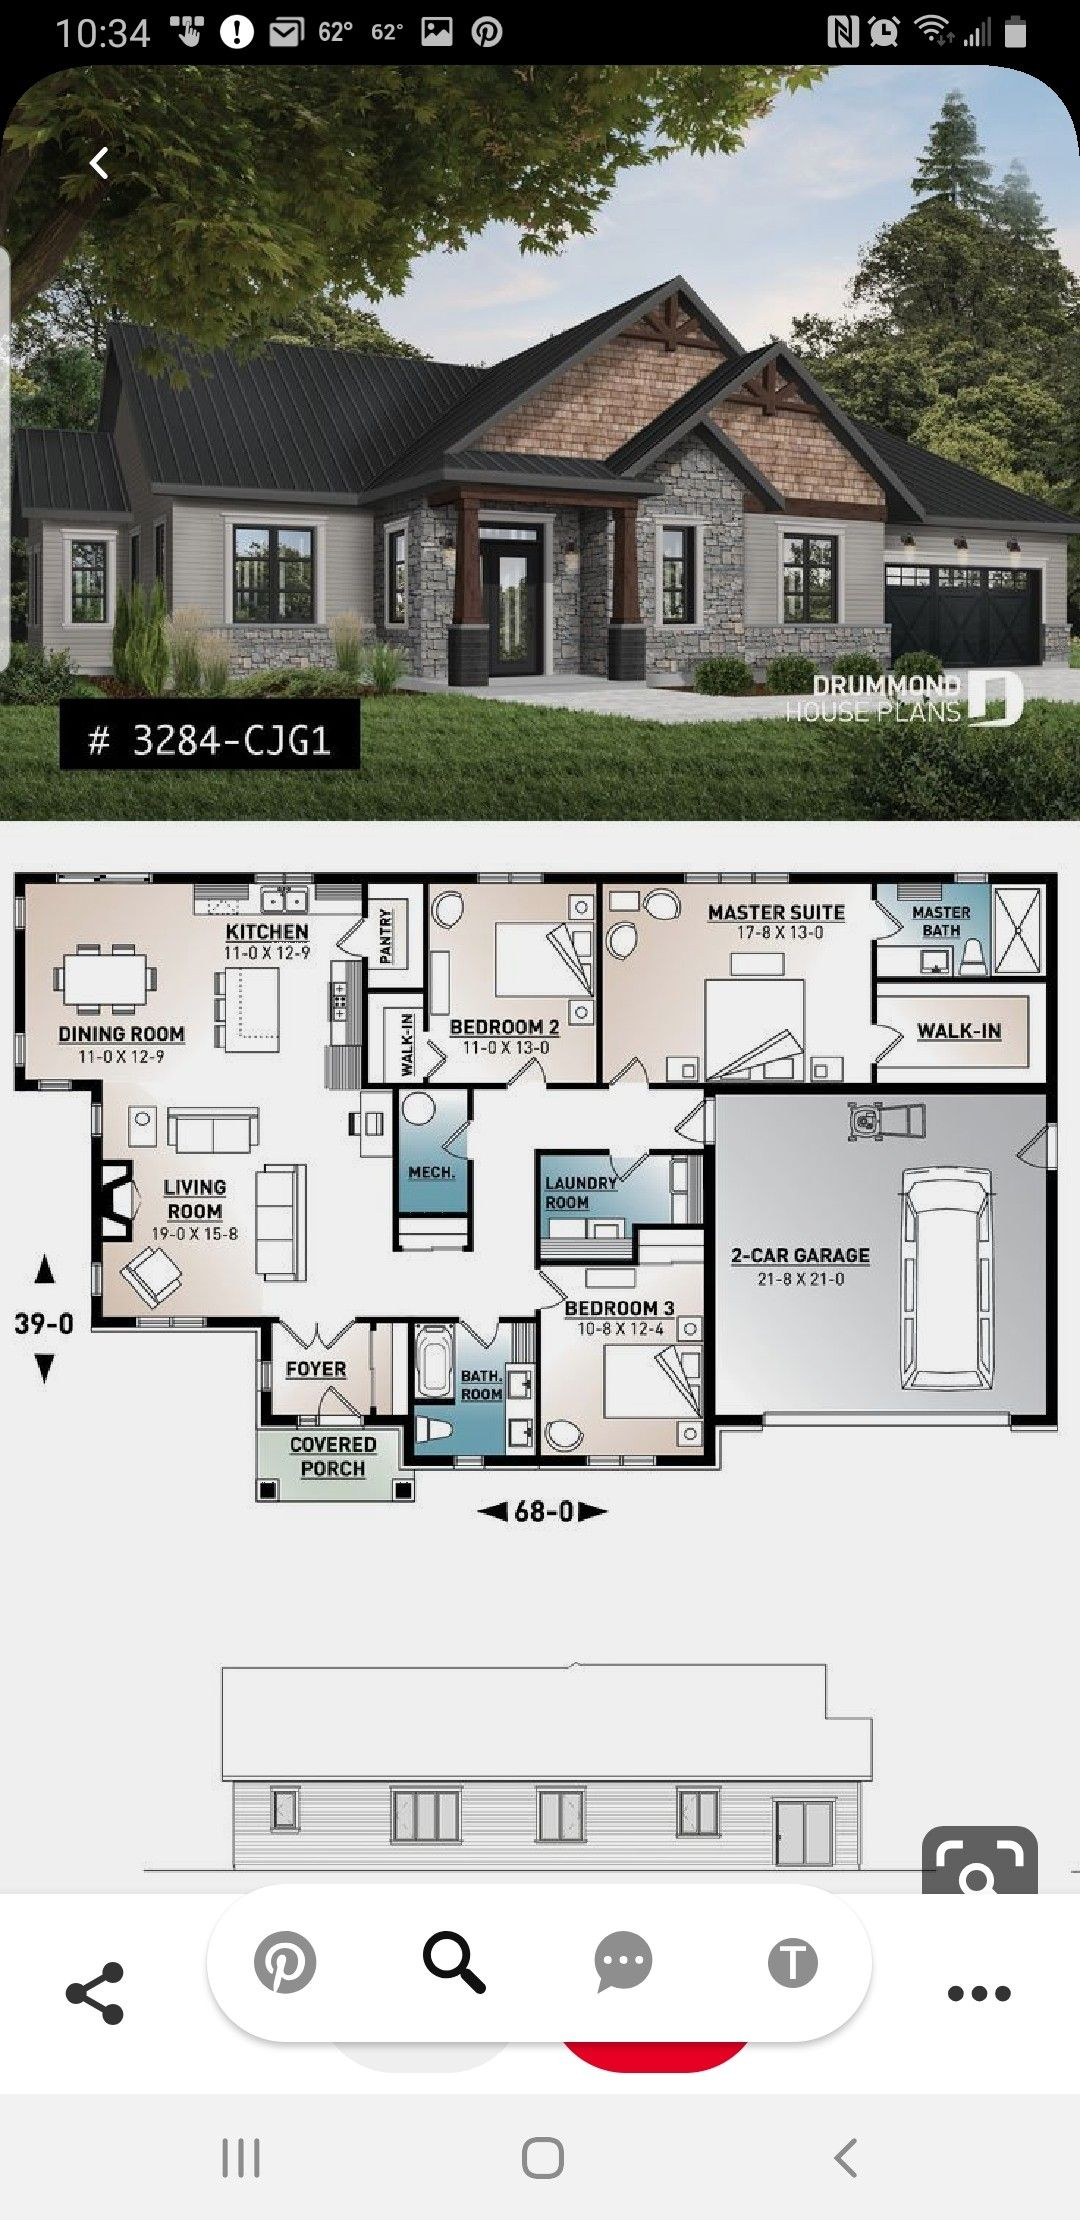 Pin By Eunice Ketang On House Plans House Blueprints House Plans House